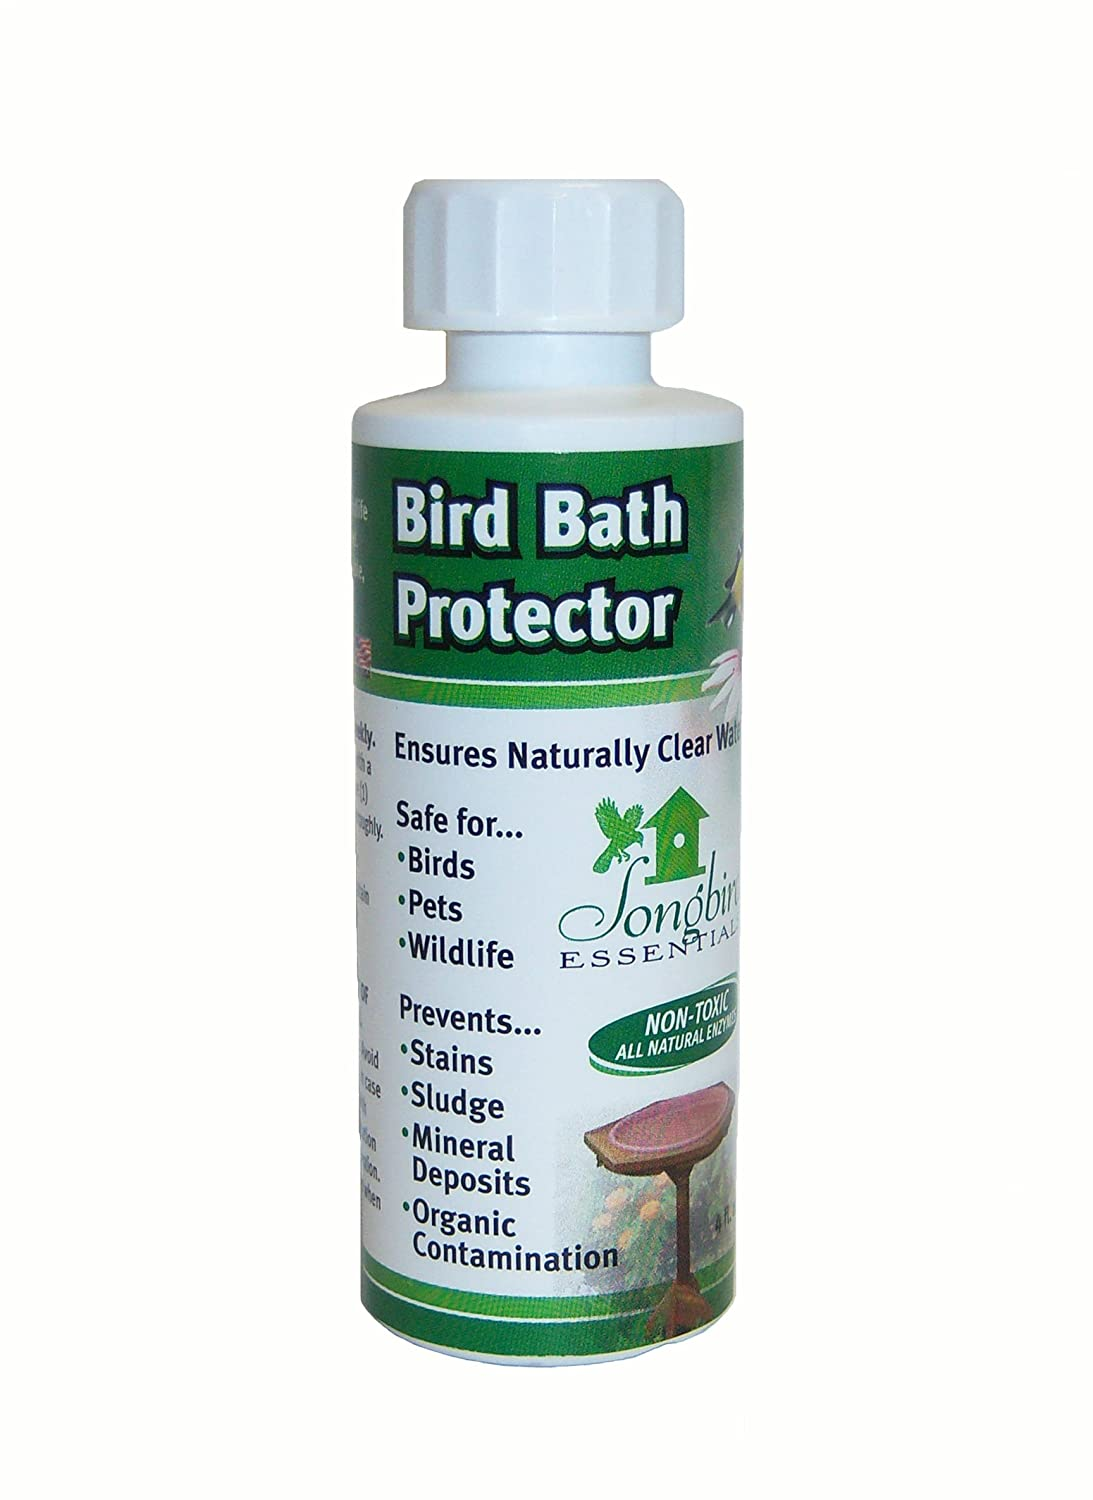 4 oz Birdbath Protector Songbird Essentials